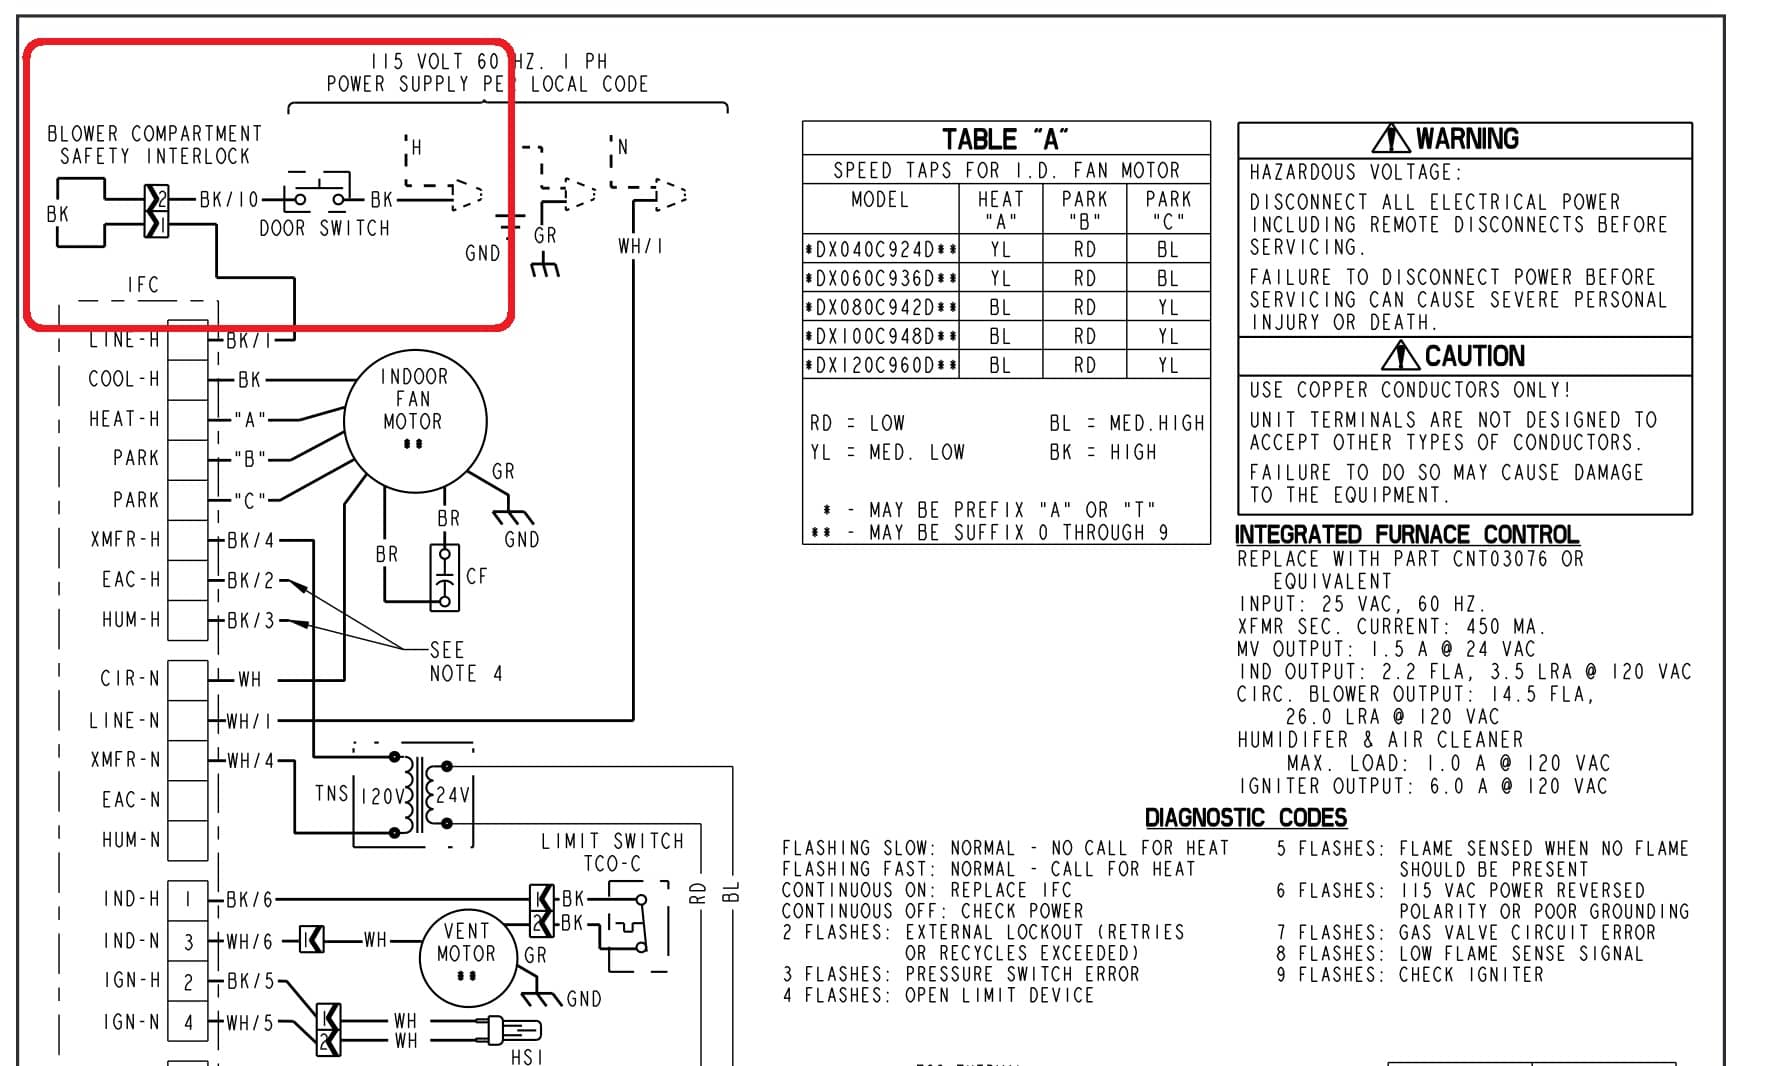 Armstrong Ultra Sx 80 Furnace Wiring Diagram in addition Lennox Gas Furnace Wiring Diagram likewise Thermostat Wiring Instructions in addition Electrical Wiring Diagrams For Air Conditioning as well Blower Door Interlock Switch. on trane furnace parts diagram